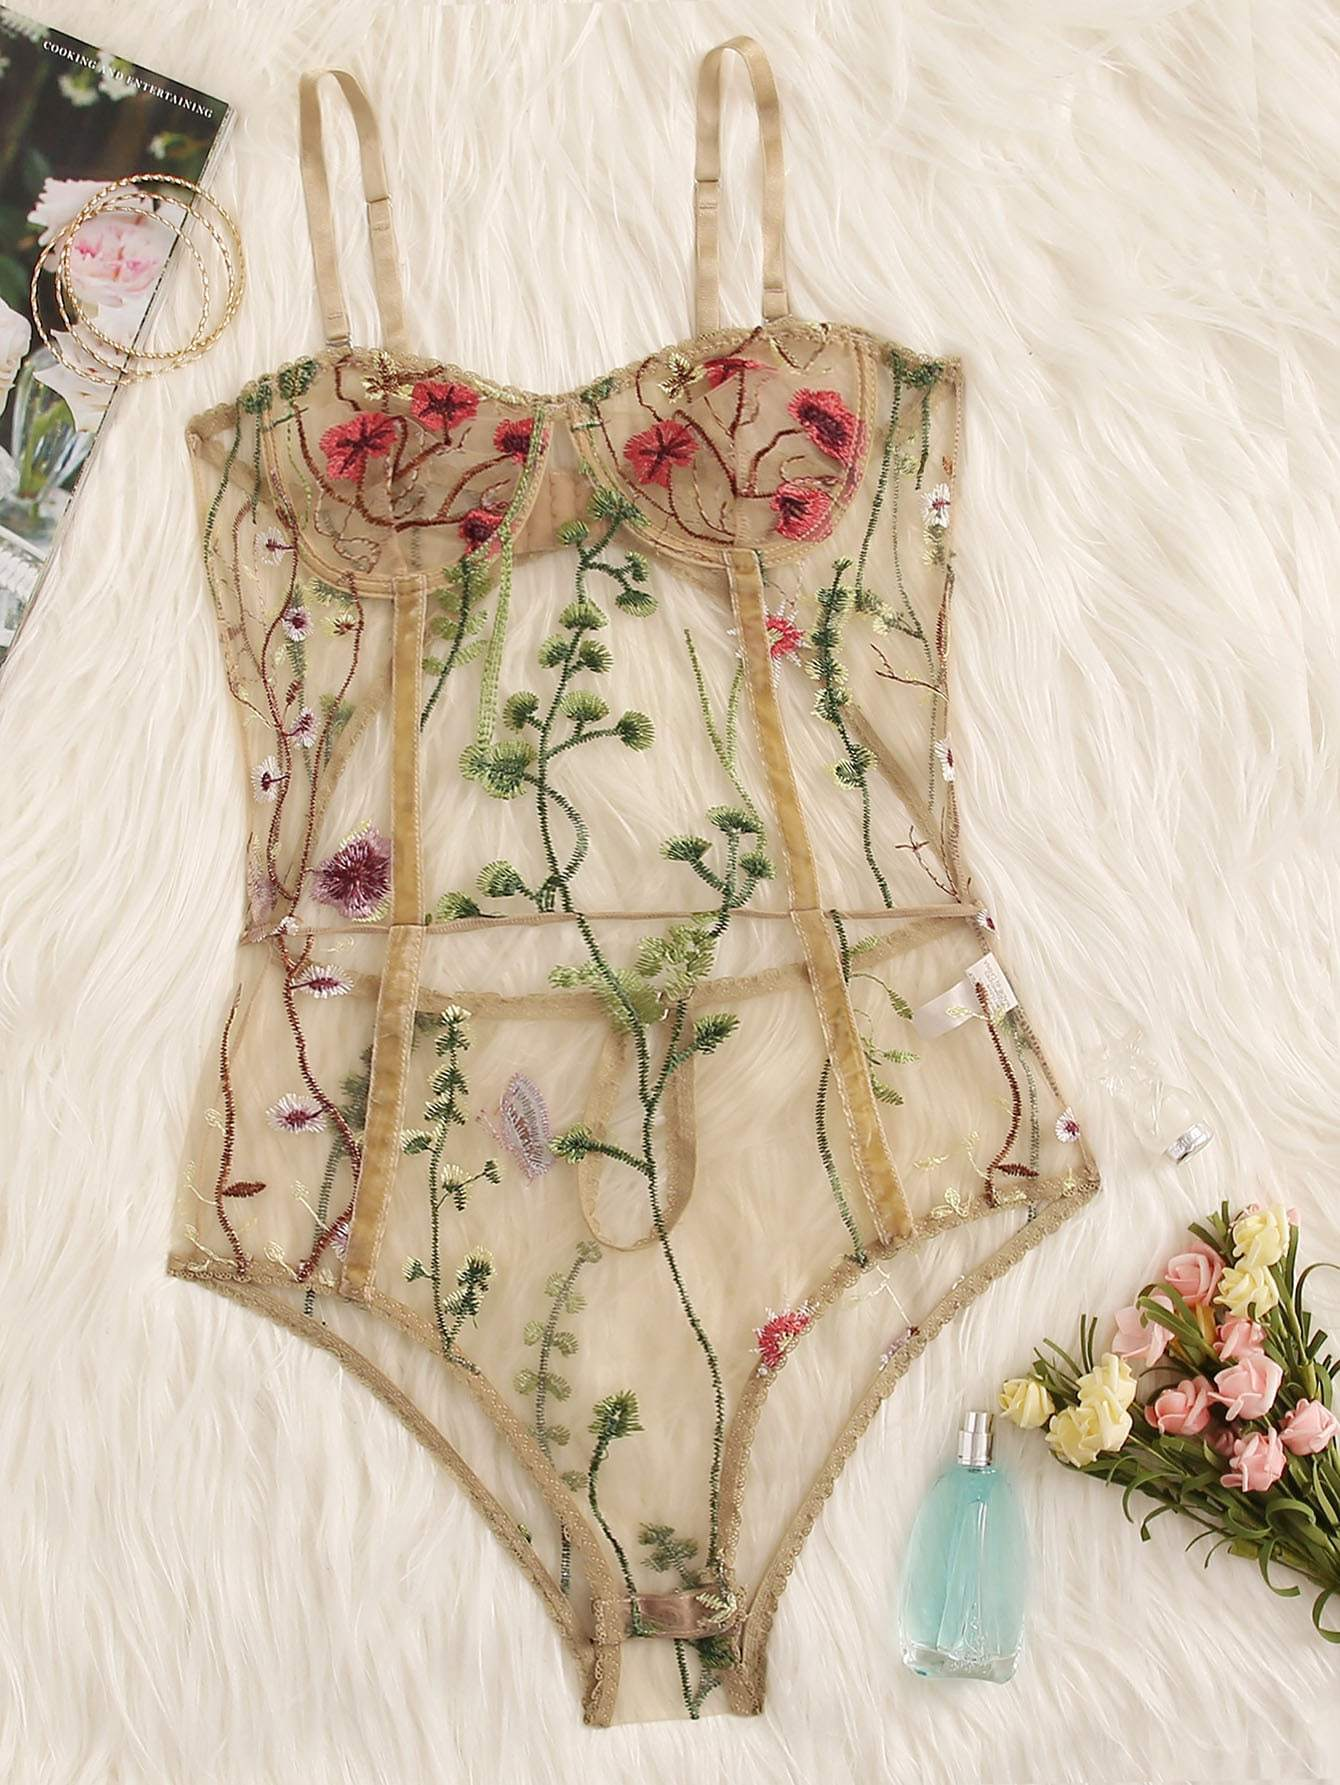 Floral Embroidered Sheer Teddy Bodysuit - FLJ CORPORATIONS